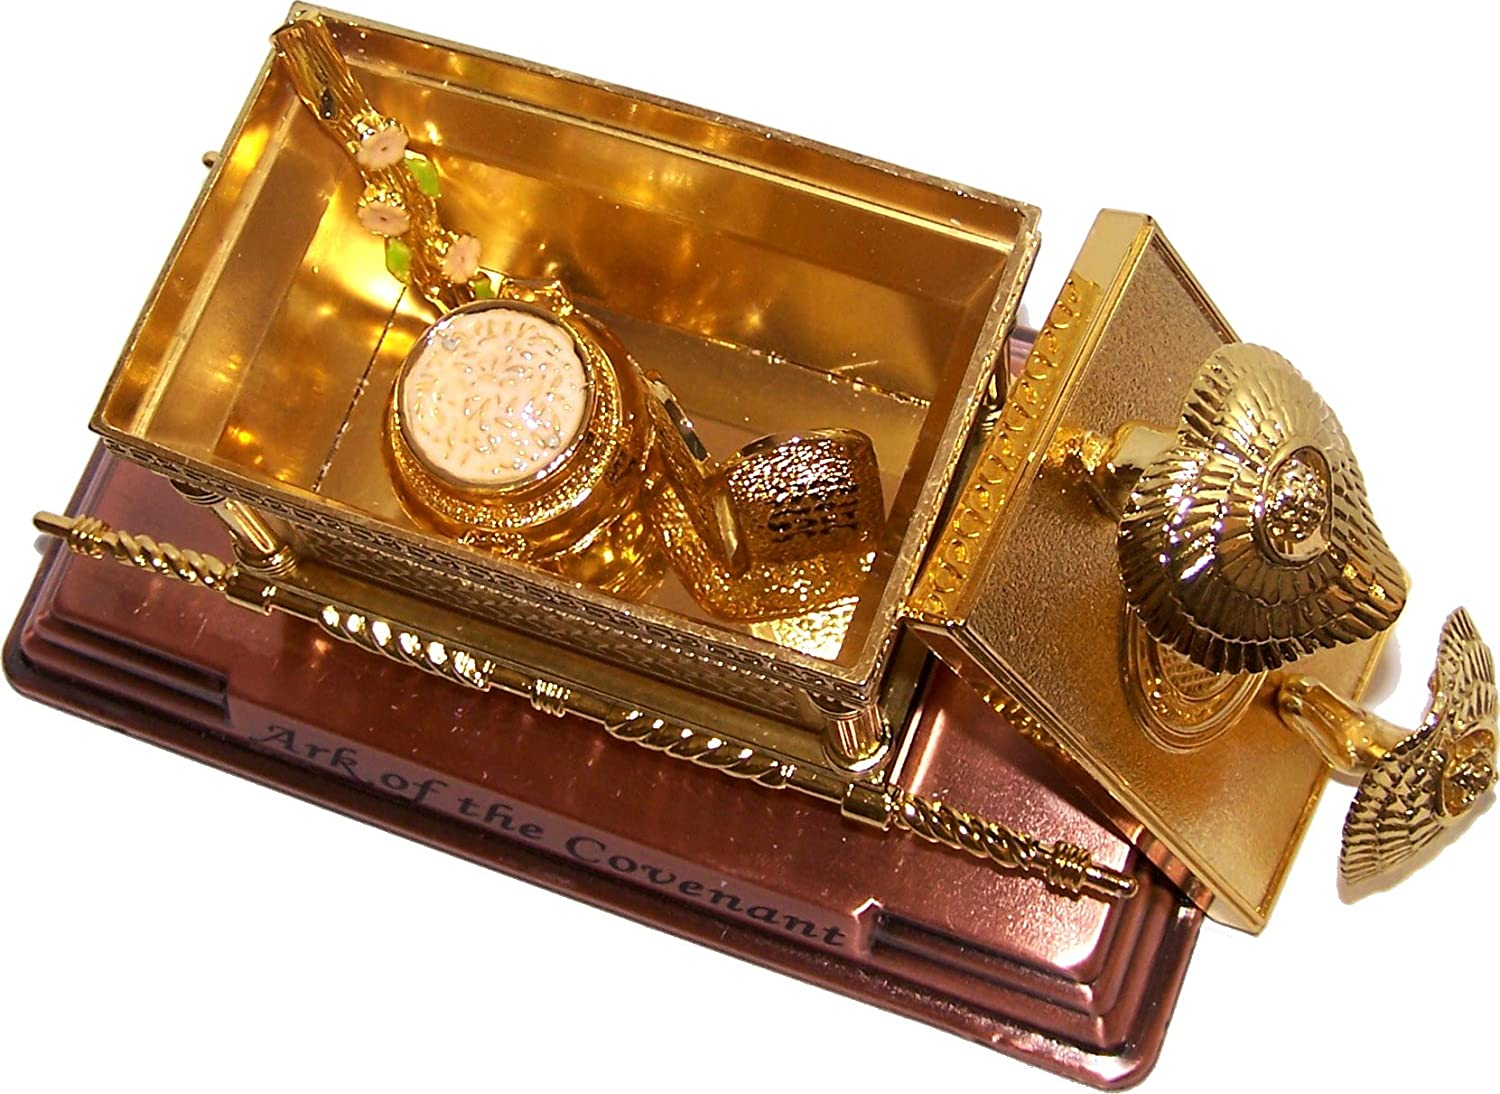 The Ark of The Covenant Gold Plated with Ark Contents Replica Aaron Rod, Tablets and Manna – Medium